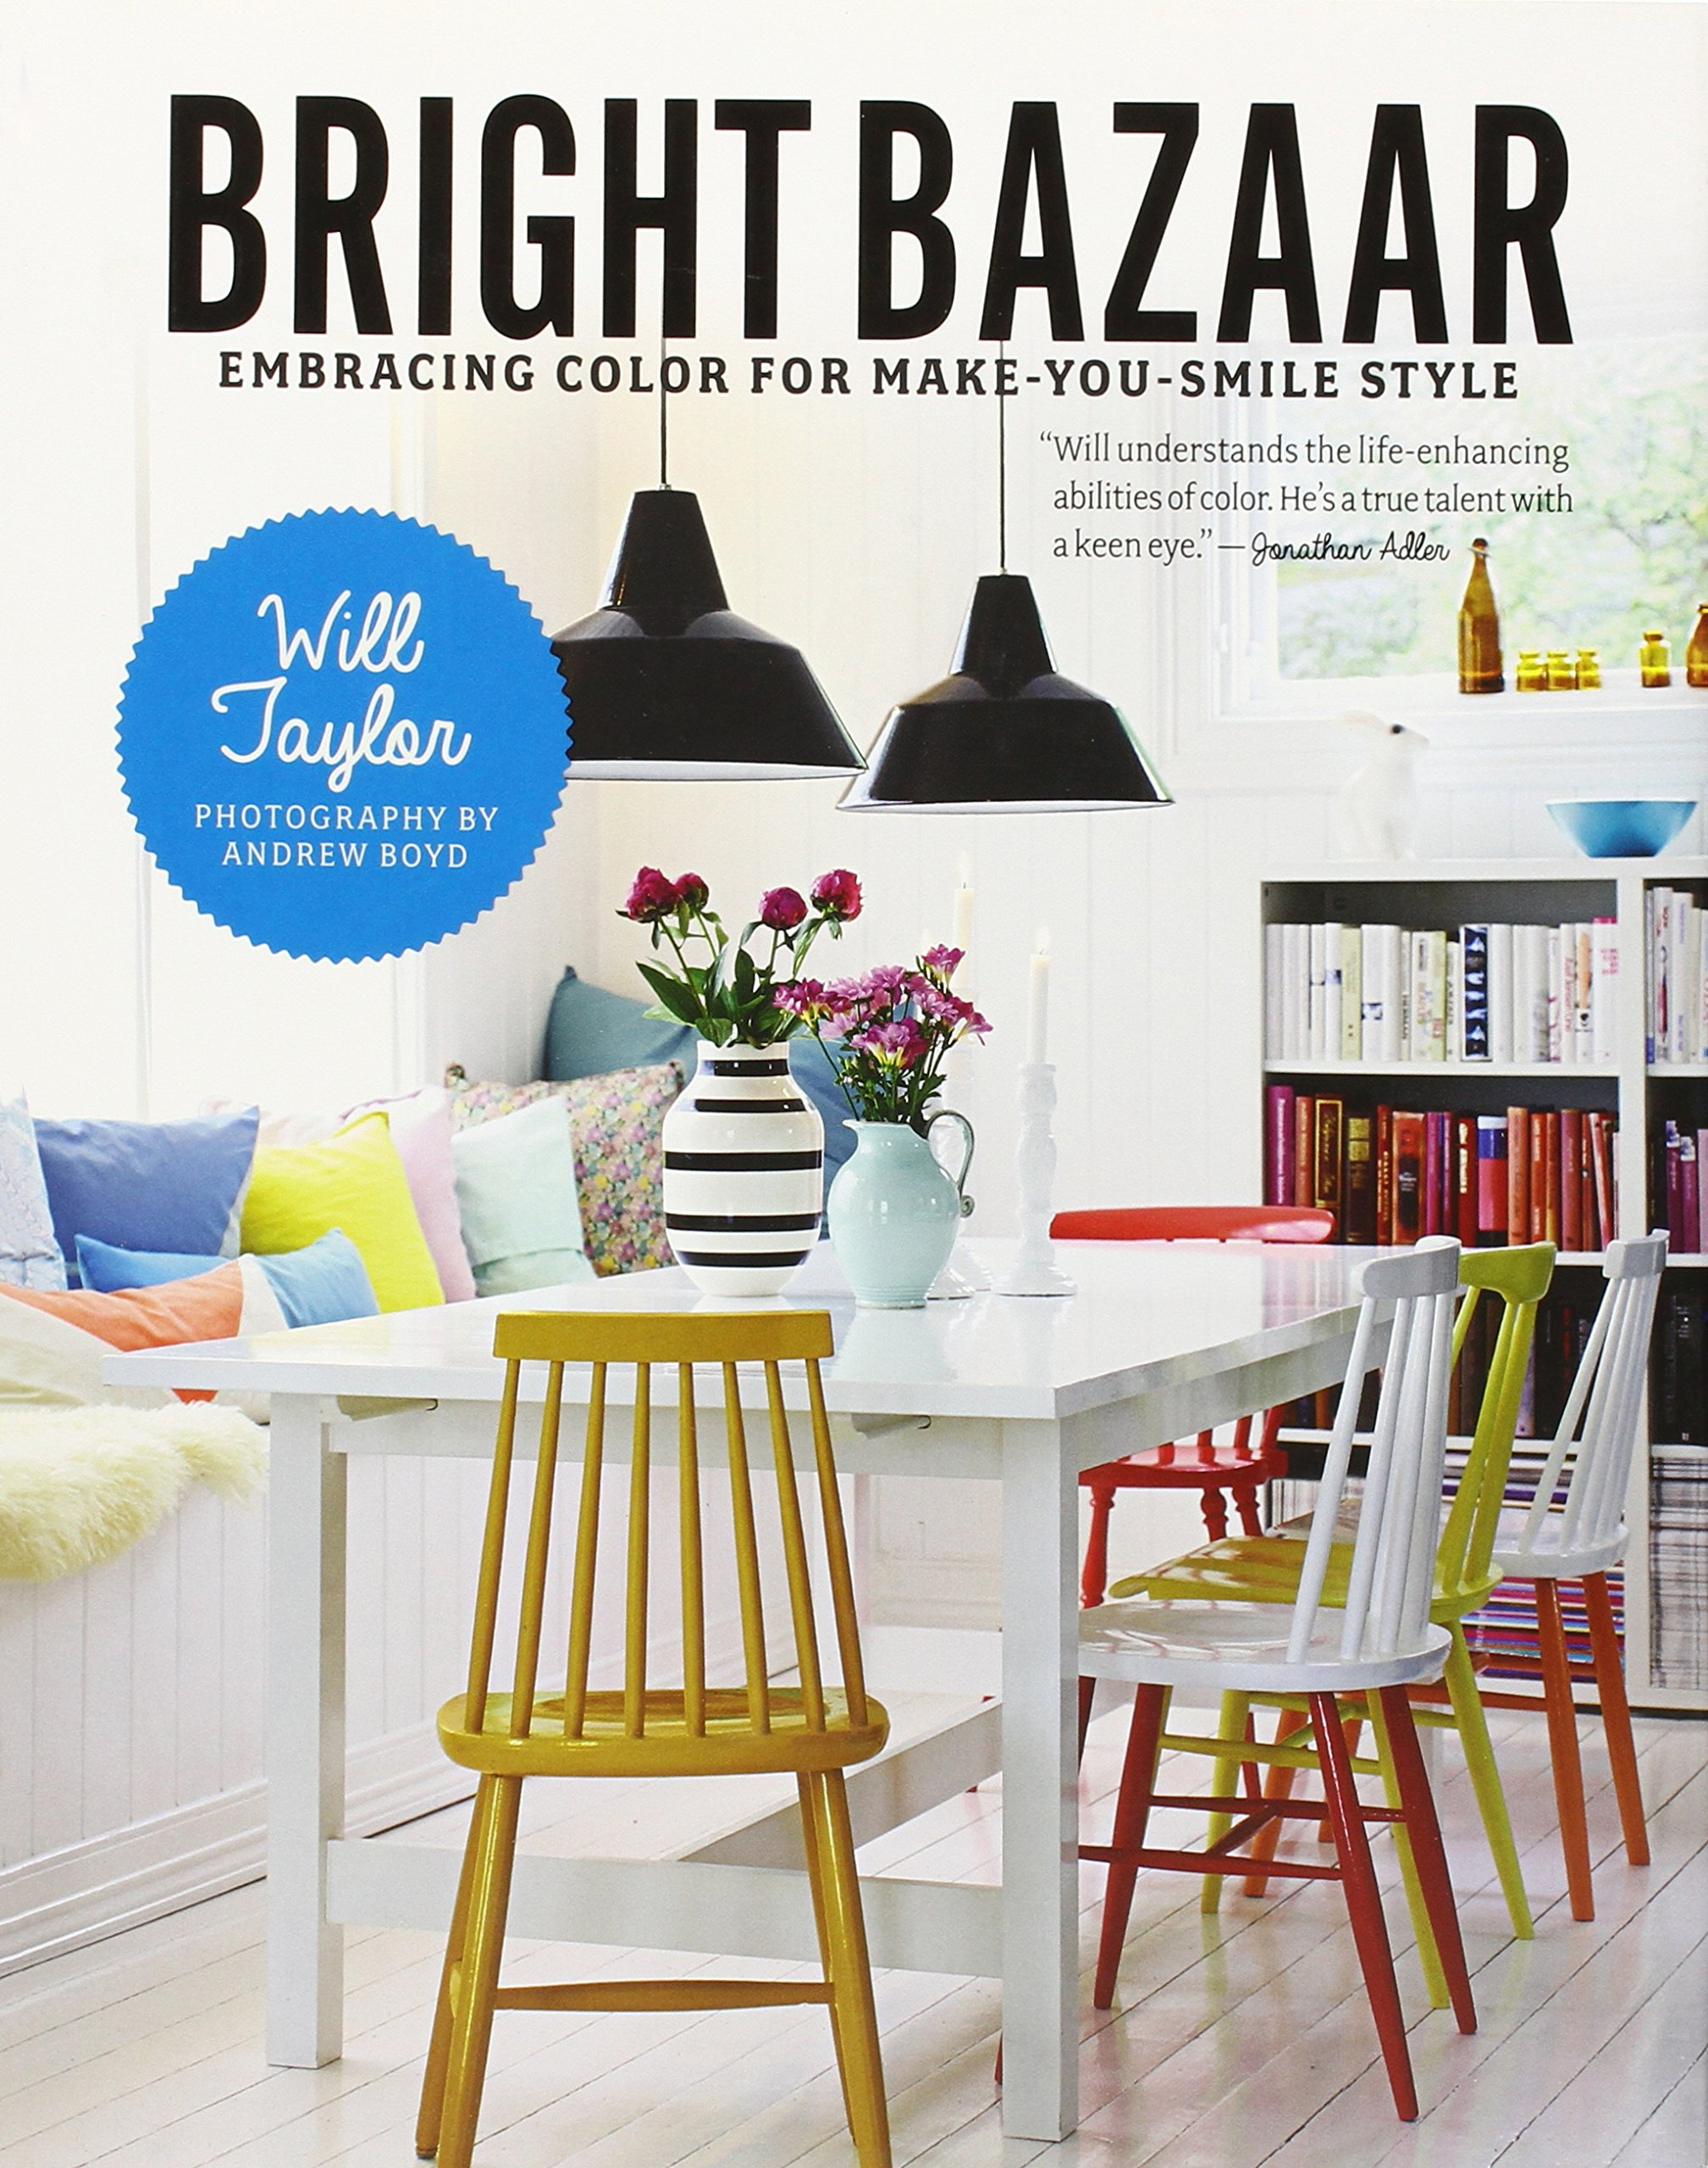 Bright Bazaar: Embracing Color for Make-You-Smile Style: Amazon.es: Will Taylor: Libros en idiomas extranjeros